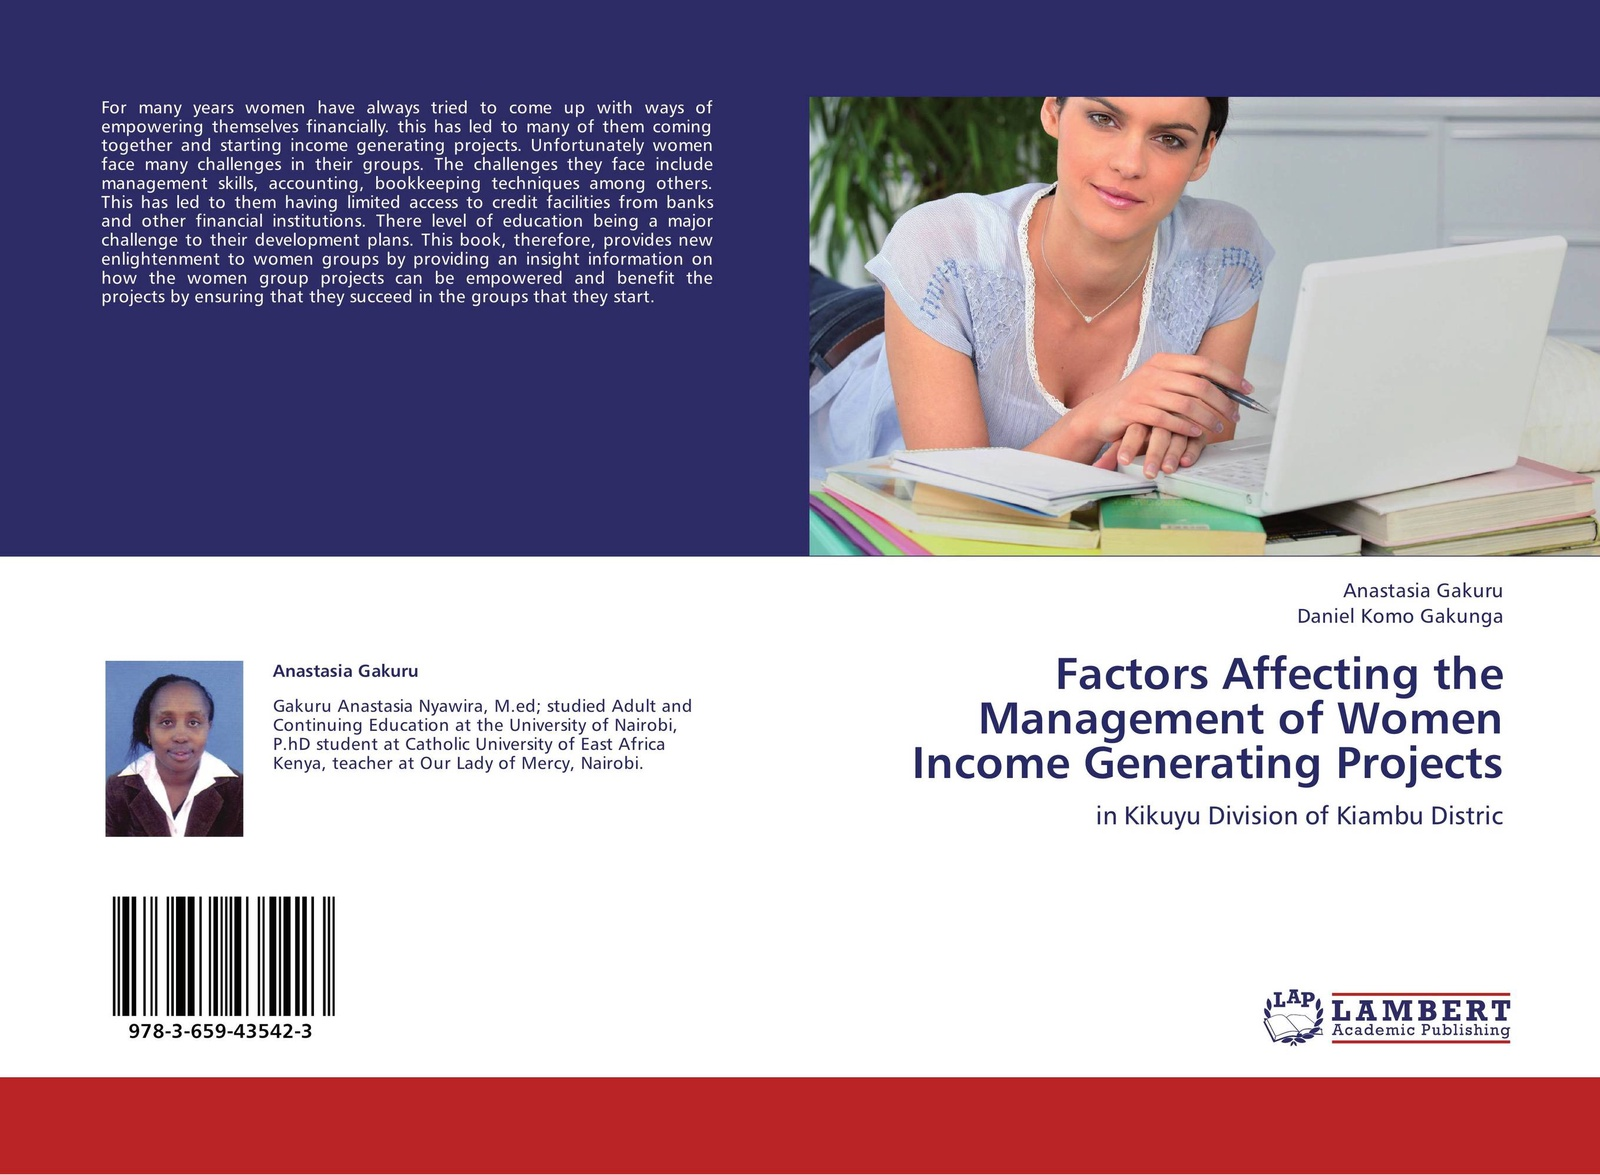 Anastasia Gakuru and DANIEL KOMO GAKUNGA Factors Affecting the Management of Women Income Generating Projects